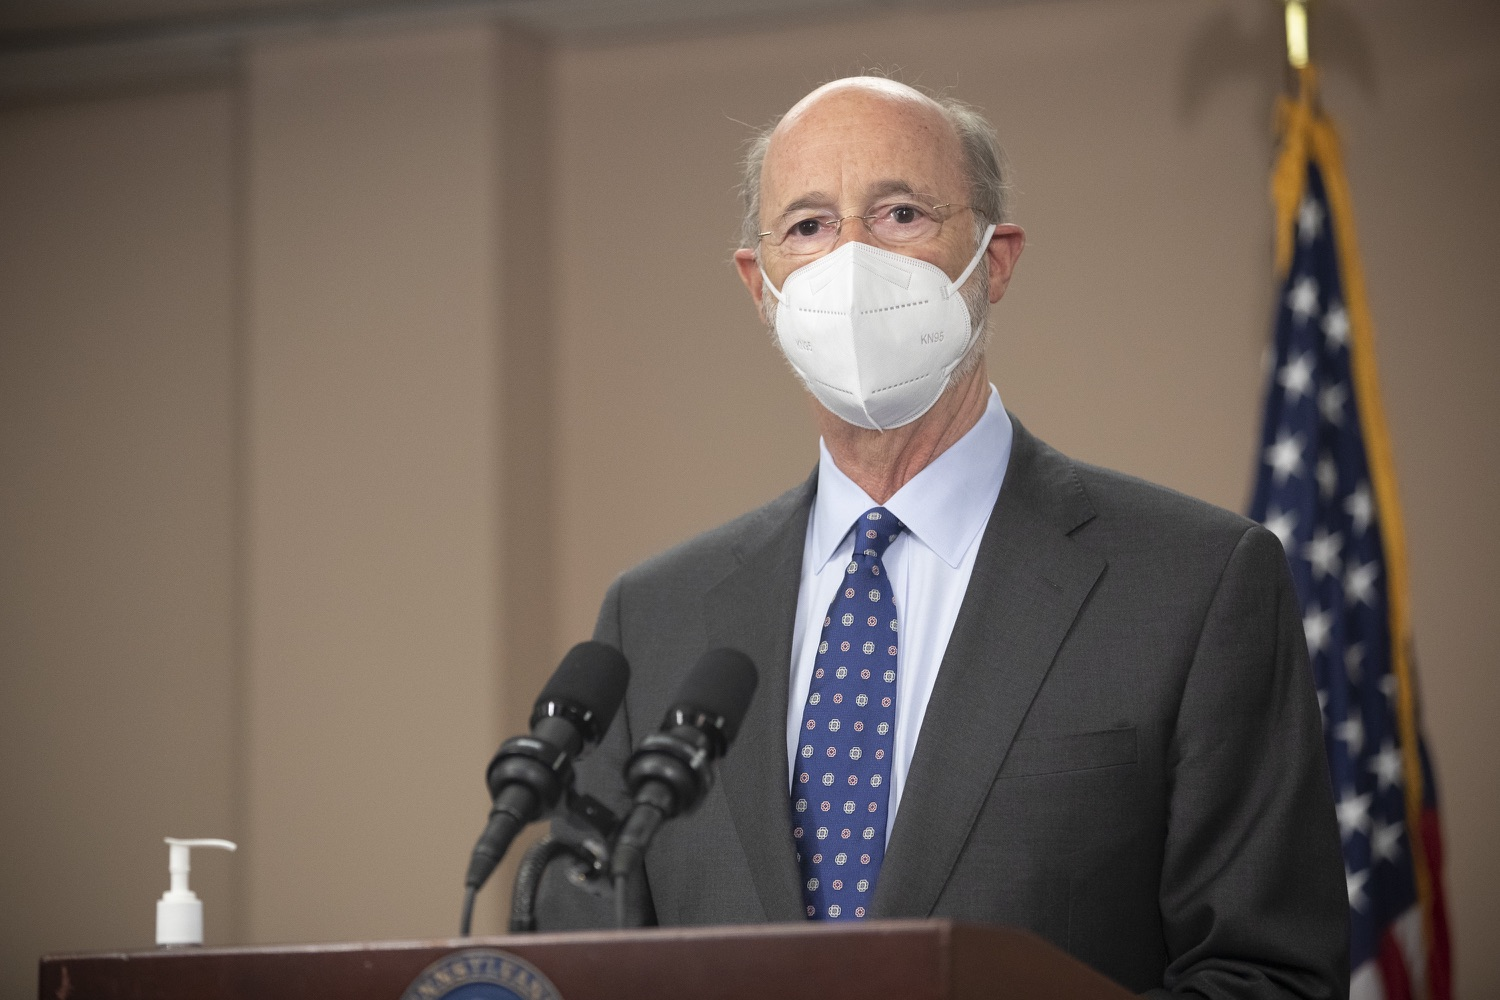 """<a href=""""https://filesource.wostreaming.net/commonwealthofpa/photo/18646_gov_vaccines_dz_006.jpg"""" target=""""_blank"""">⇣Download Photo<br></a>Pennsylvania Governor Tom Wolf speaking with the press.  After vaccinating more than 112,500 teachers and school staff in only about three weeks, Governor Tom Wolf visited Luzerne County today to announce the special vaccination initiative is a success and was completed ahead of schedule. The accomplishment is an important step to help more students and teachers safely return to classrooms across the state.  Kingston, PA - April 2, 2021"""